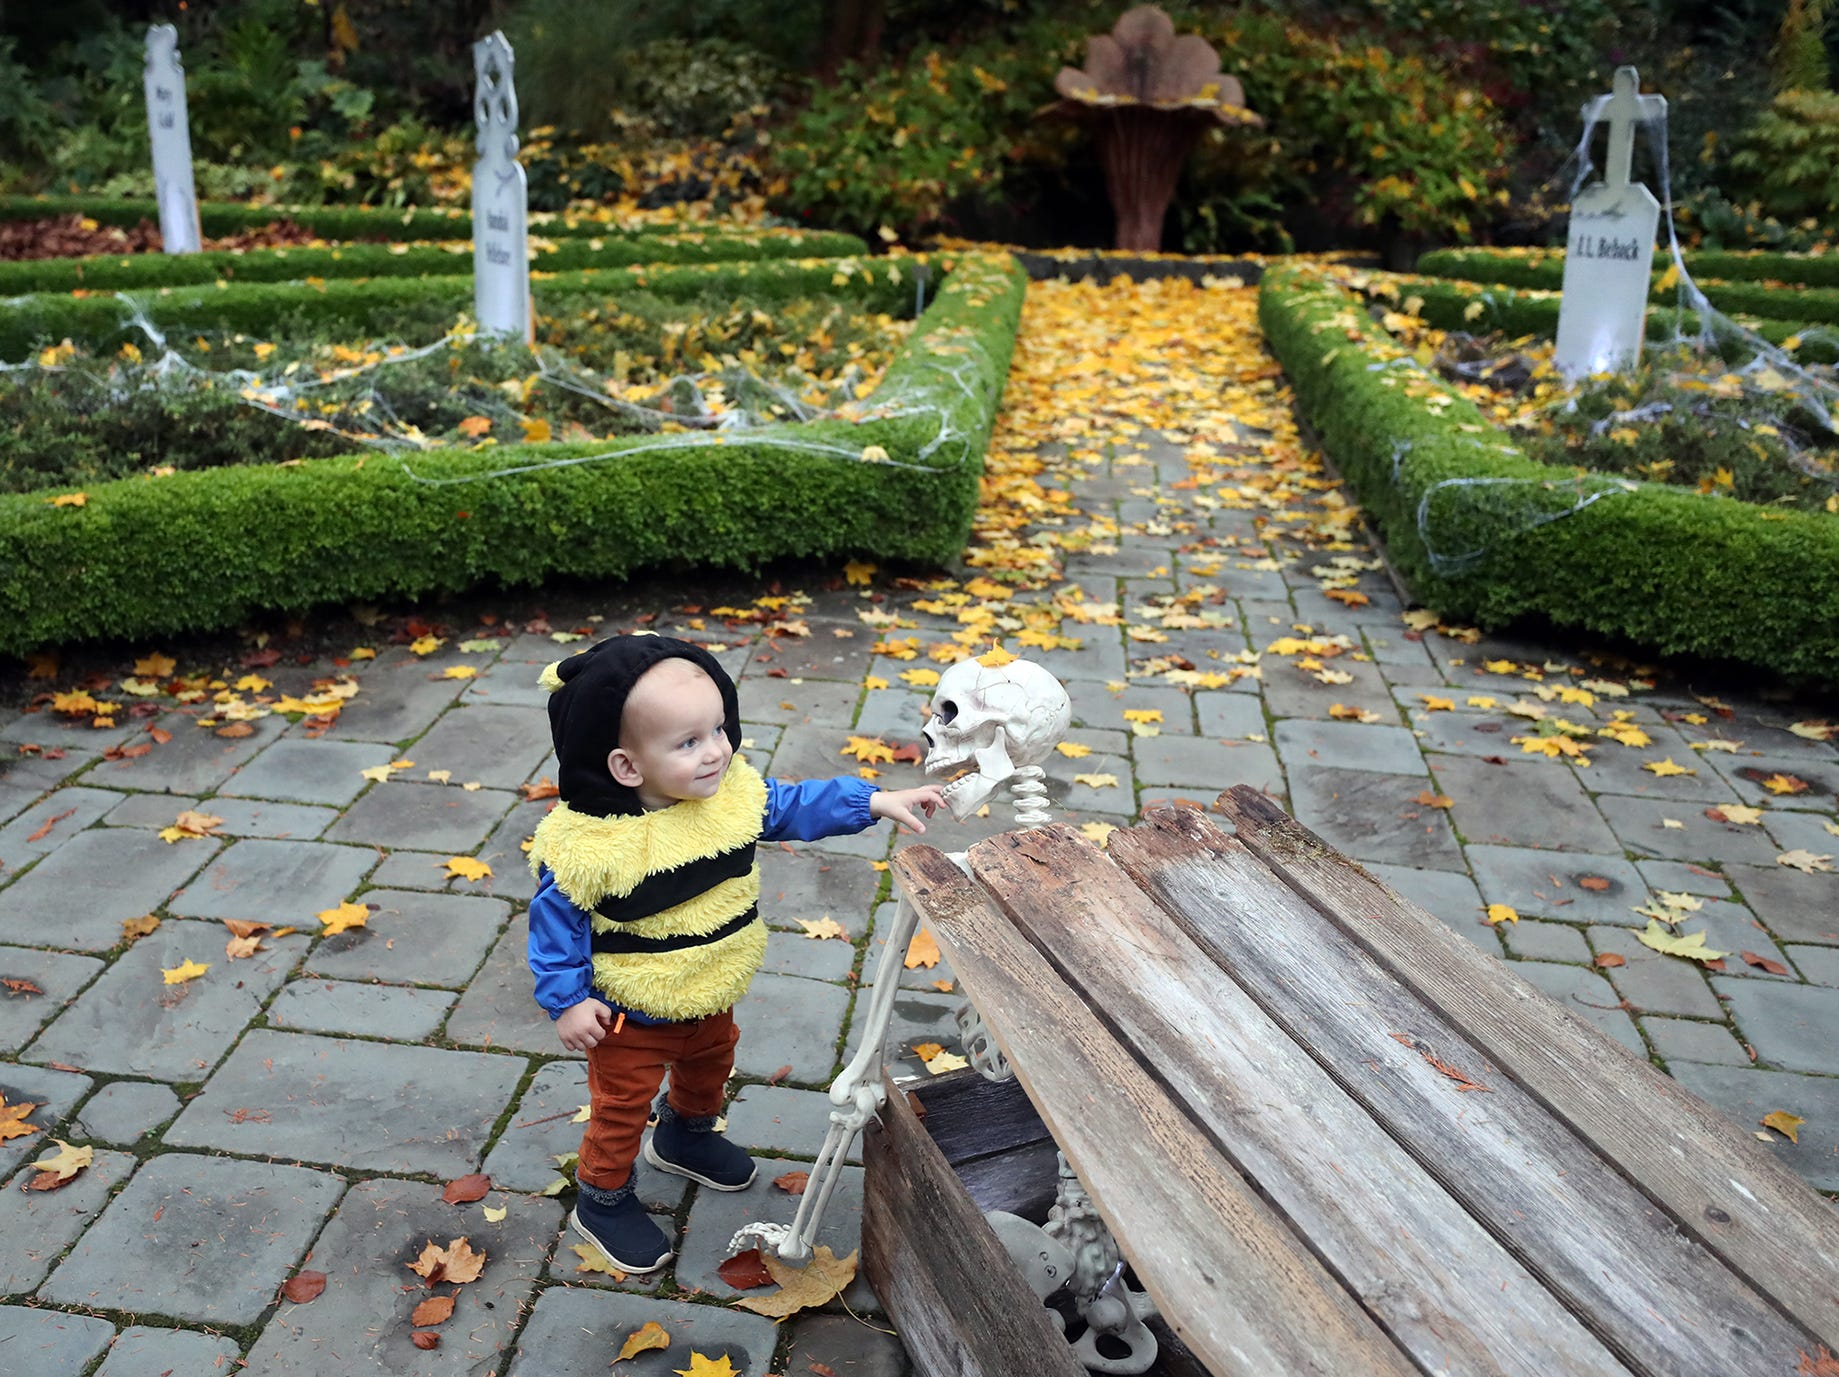 Lou Ramsey, 1, of Bremerton has a skeleton in a coffin bite his hand in the graveyard at the Haunted Heronswood 2018 in Kingston was Friday and Saturday, October,26-27. The second annual garden halloween charters tour featured some SÕKlallam folk stories.